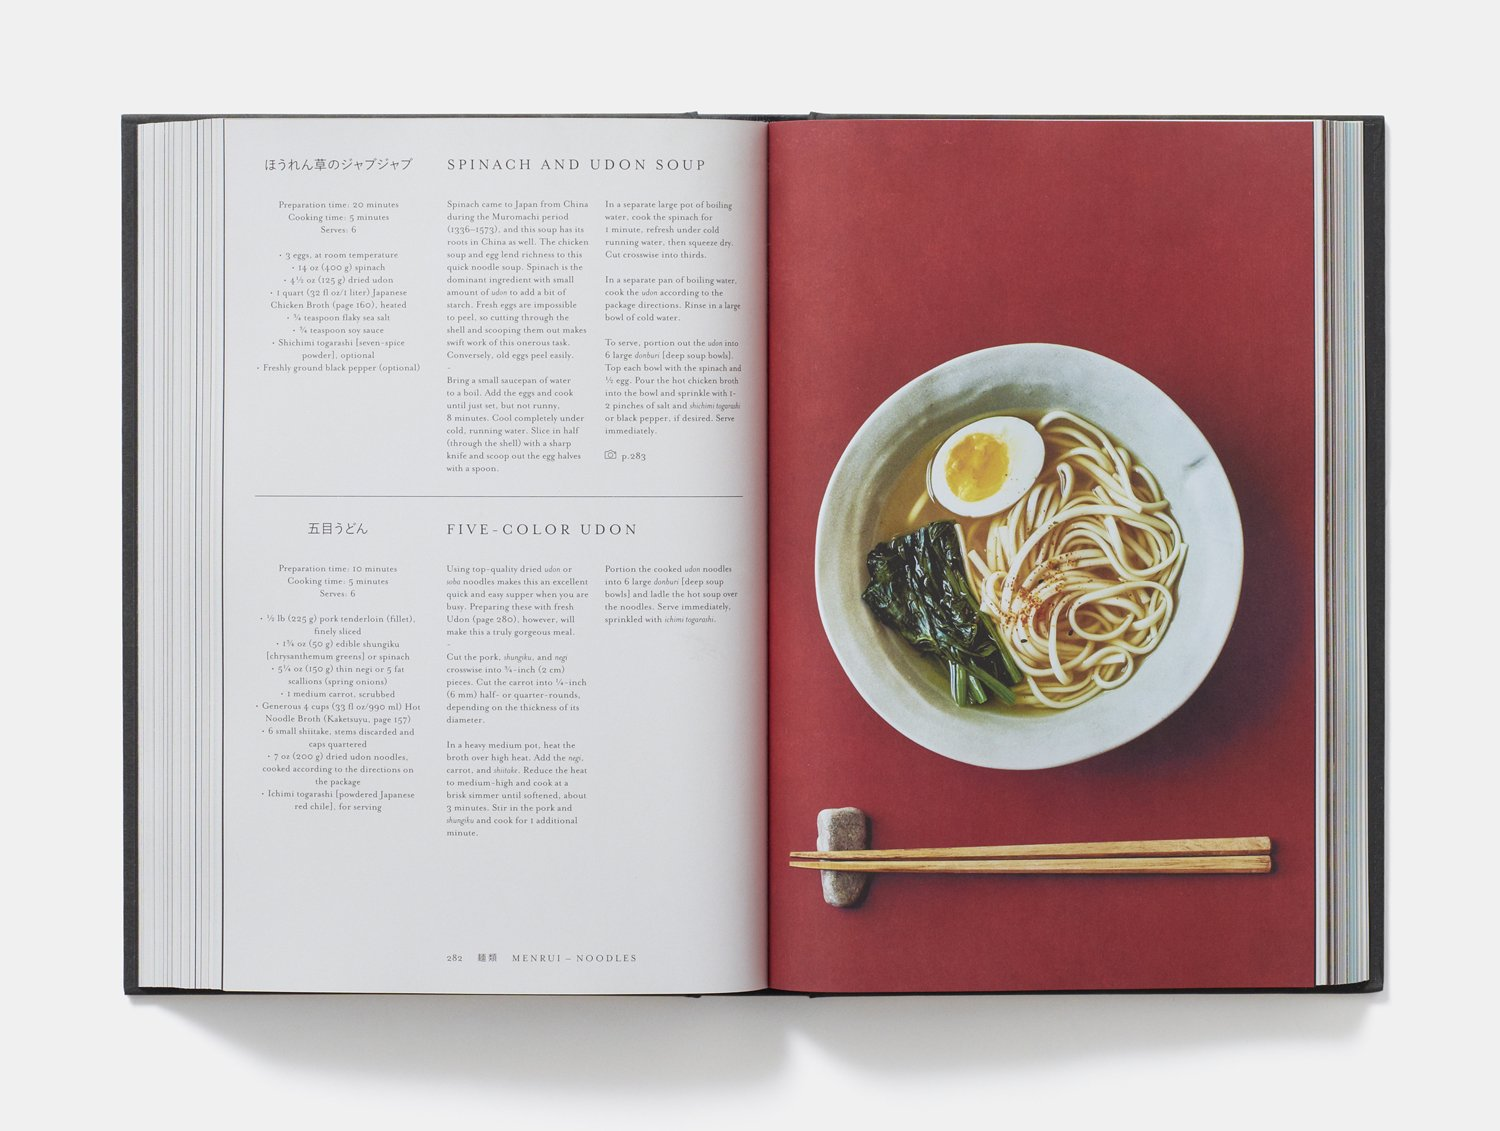 Japan. The Cookbook (Cucina): Amazon.es: Nancy Singleton Hachisu: Libros en idiomas extranjeros